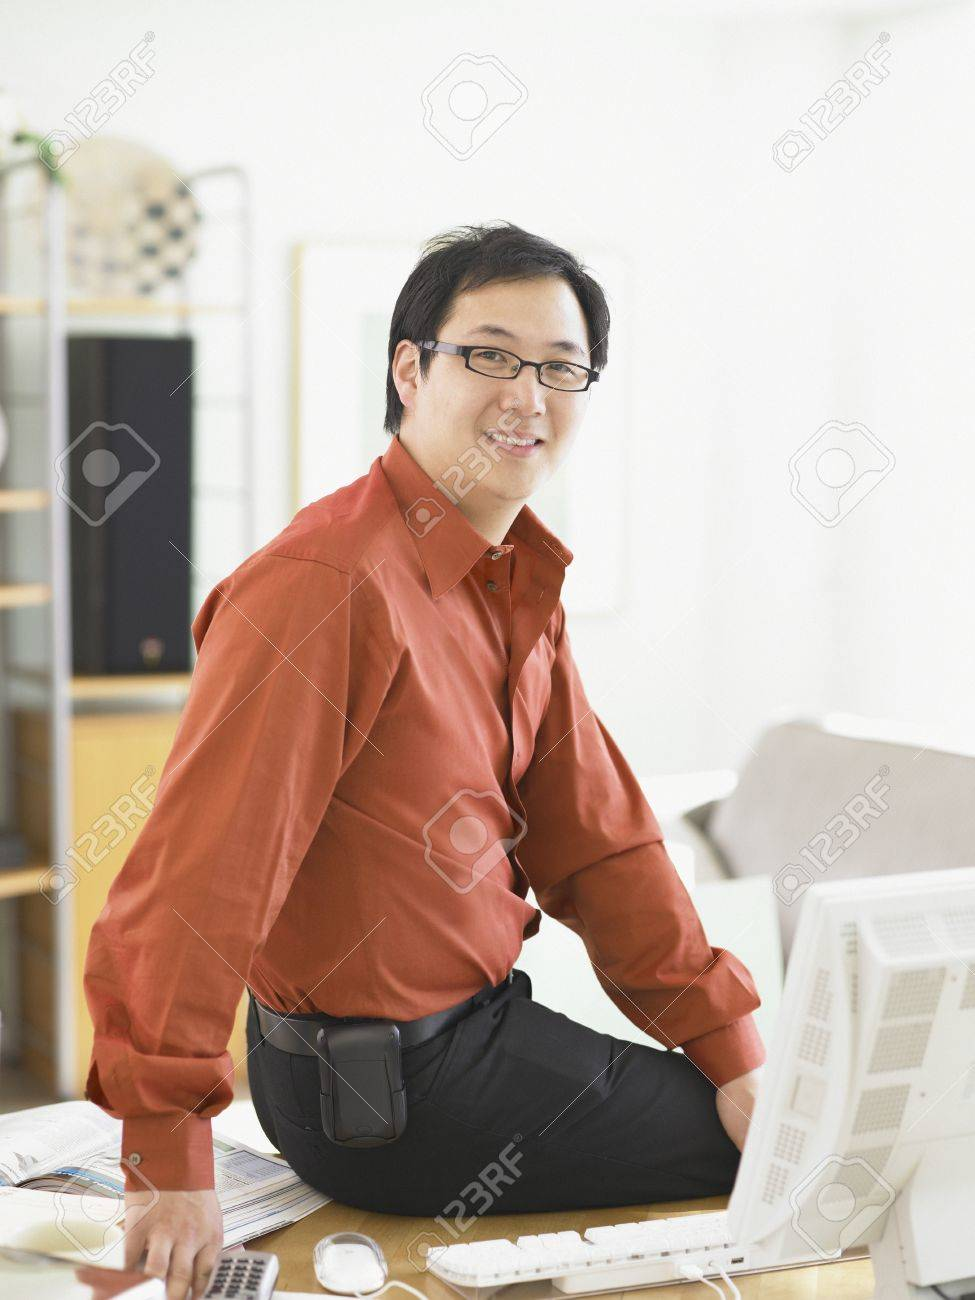 Businessman smiling for the camera at his desk Stock Photo - 16089564